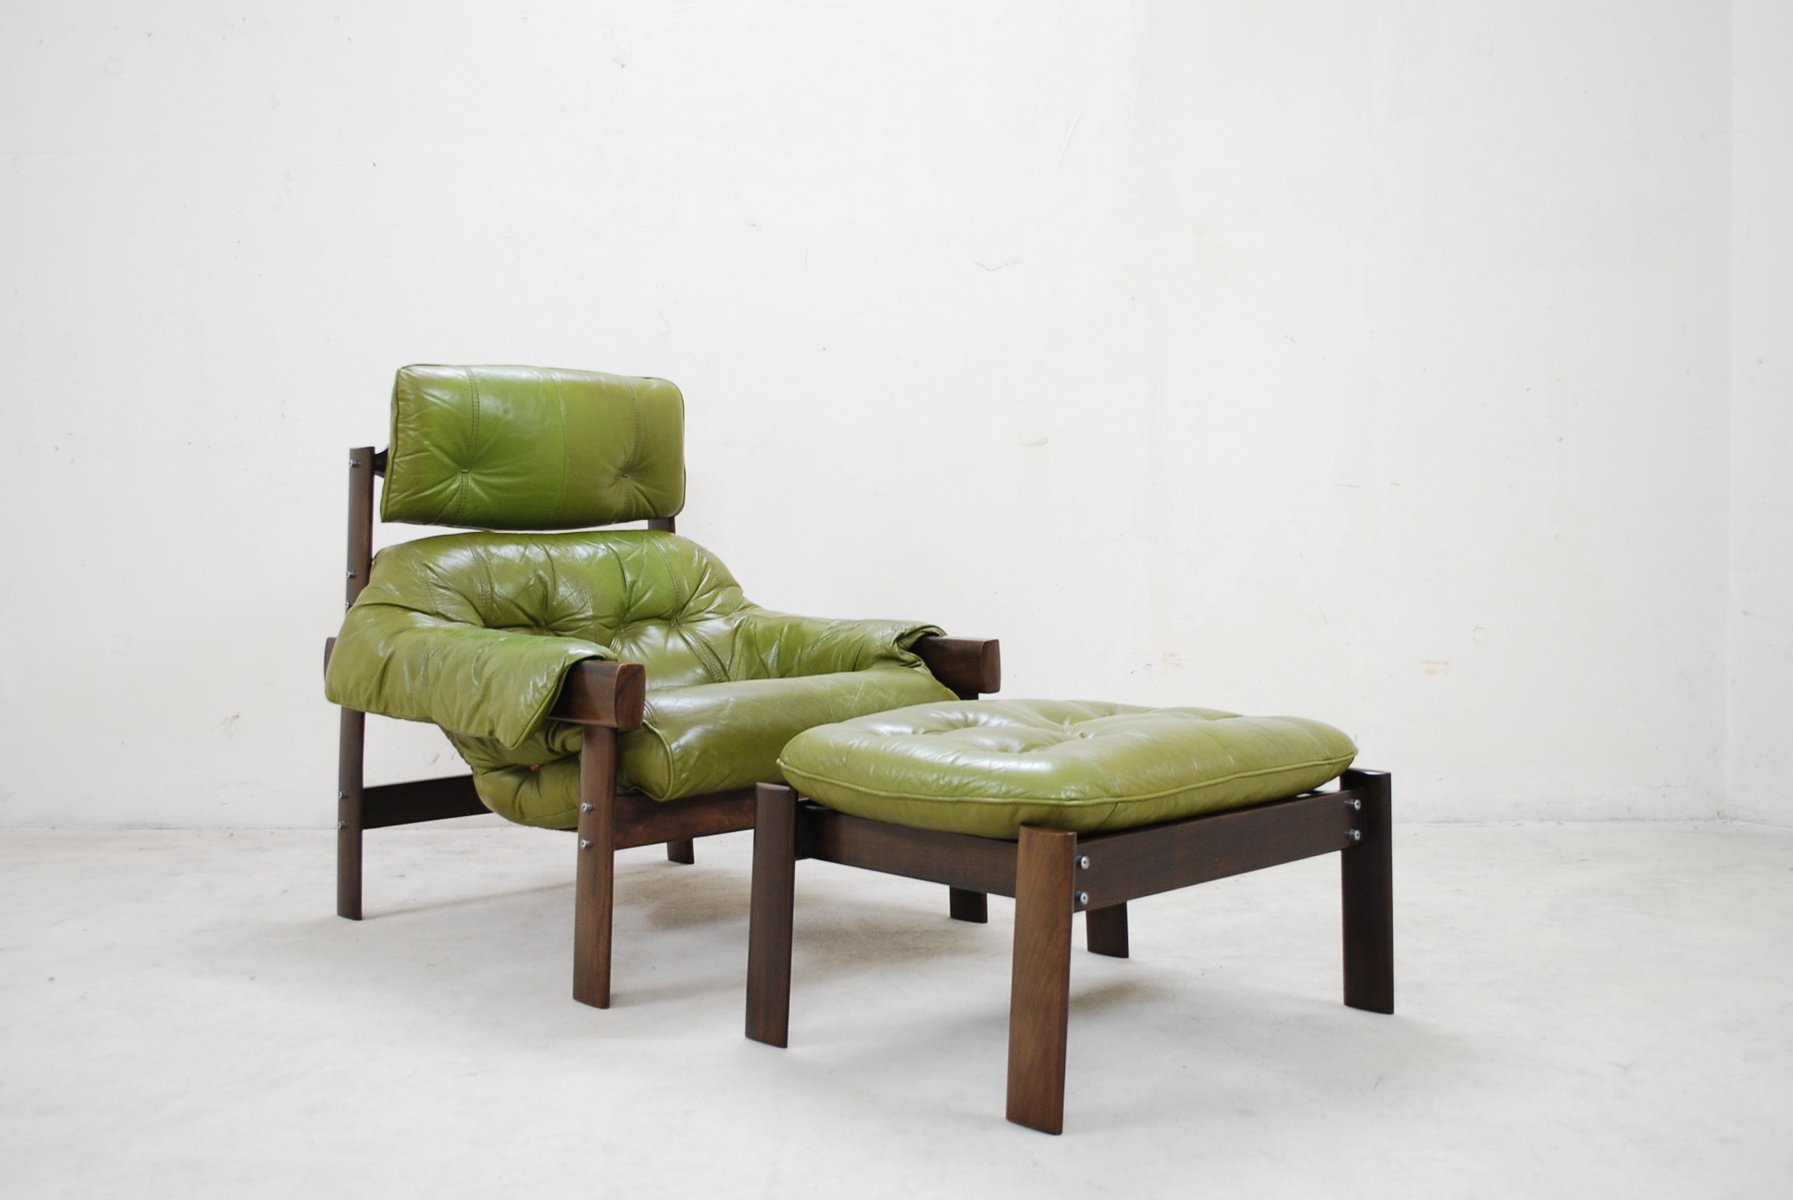 Beau Model MP 041 Lime Green Leather Lounge Chair U0026 Ottoman From Percival Lafer,  1961